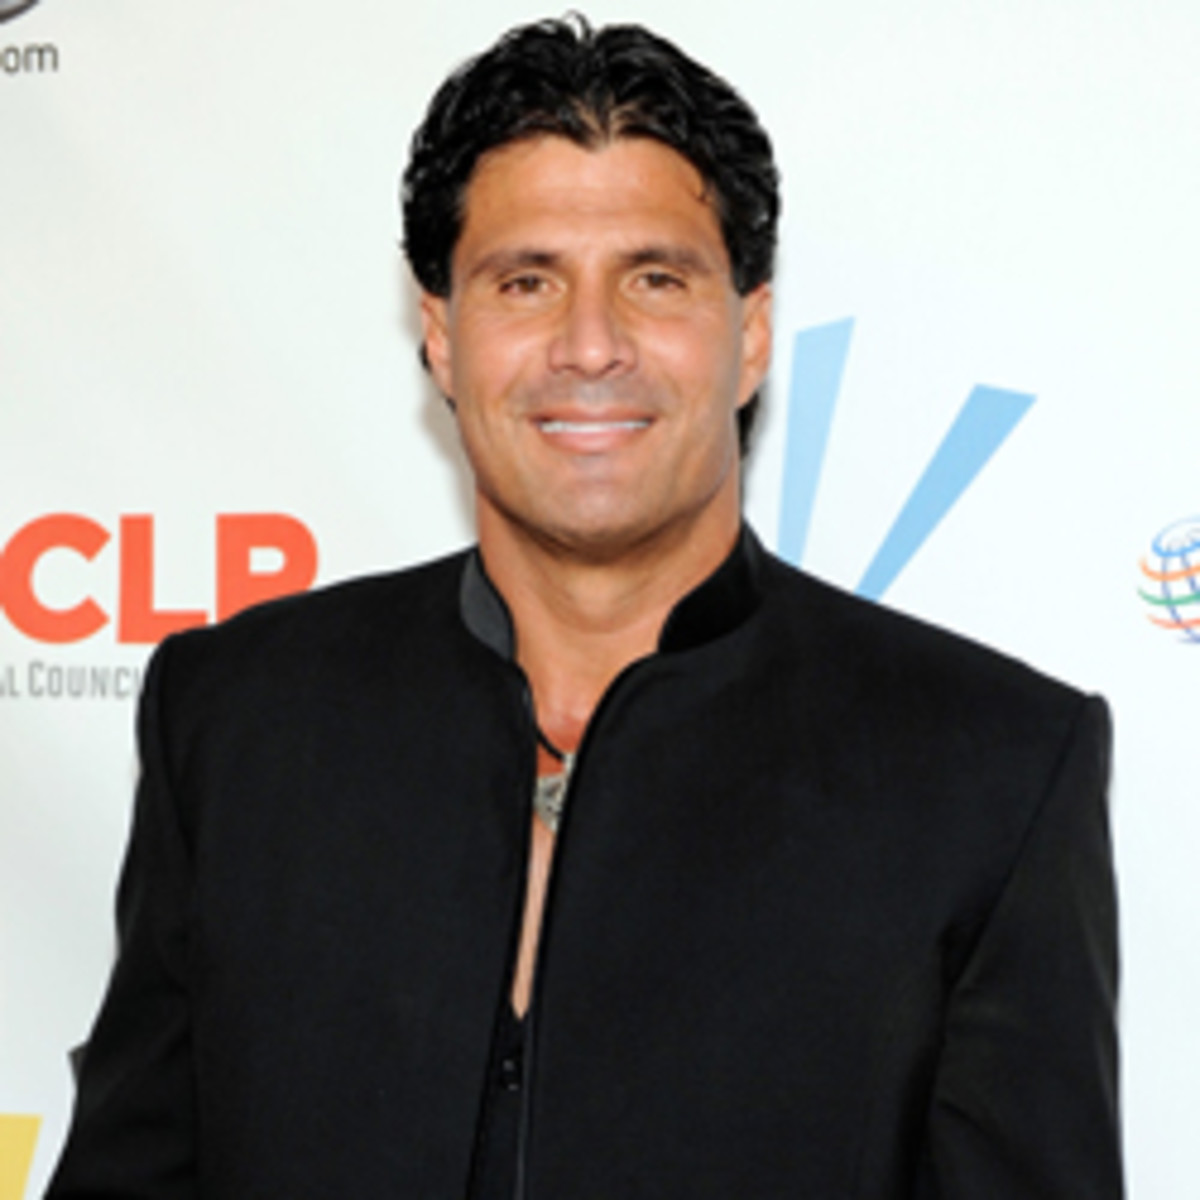 Jose-Canseco-Getty-T